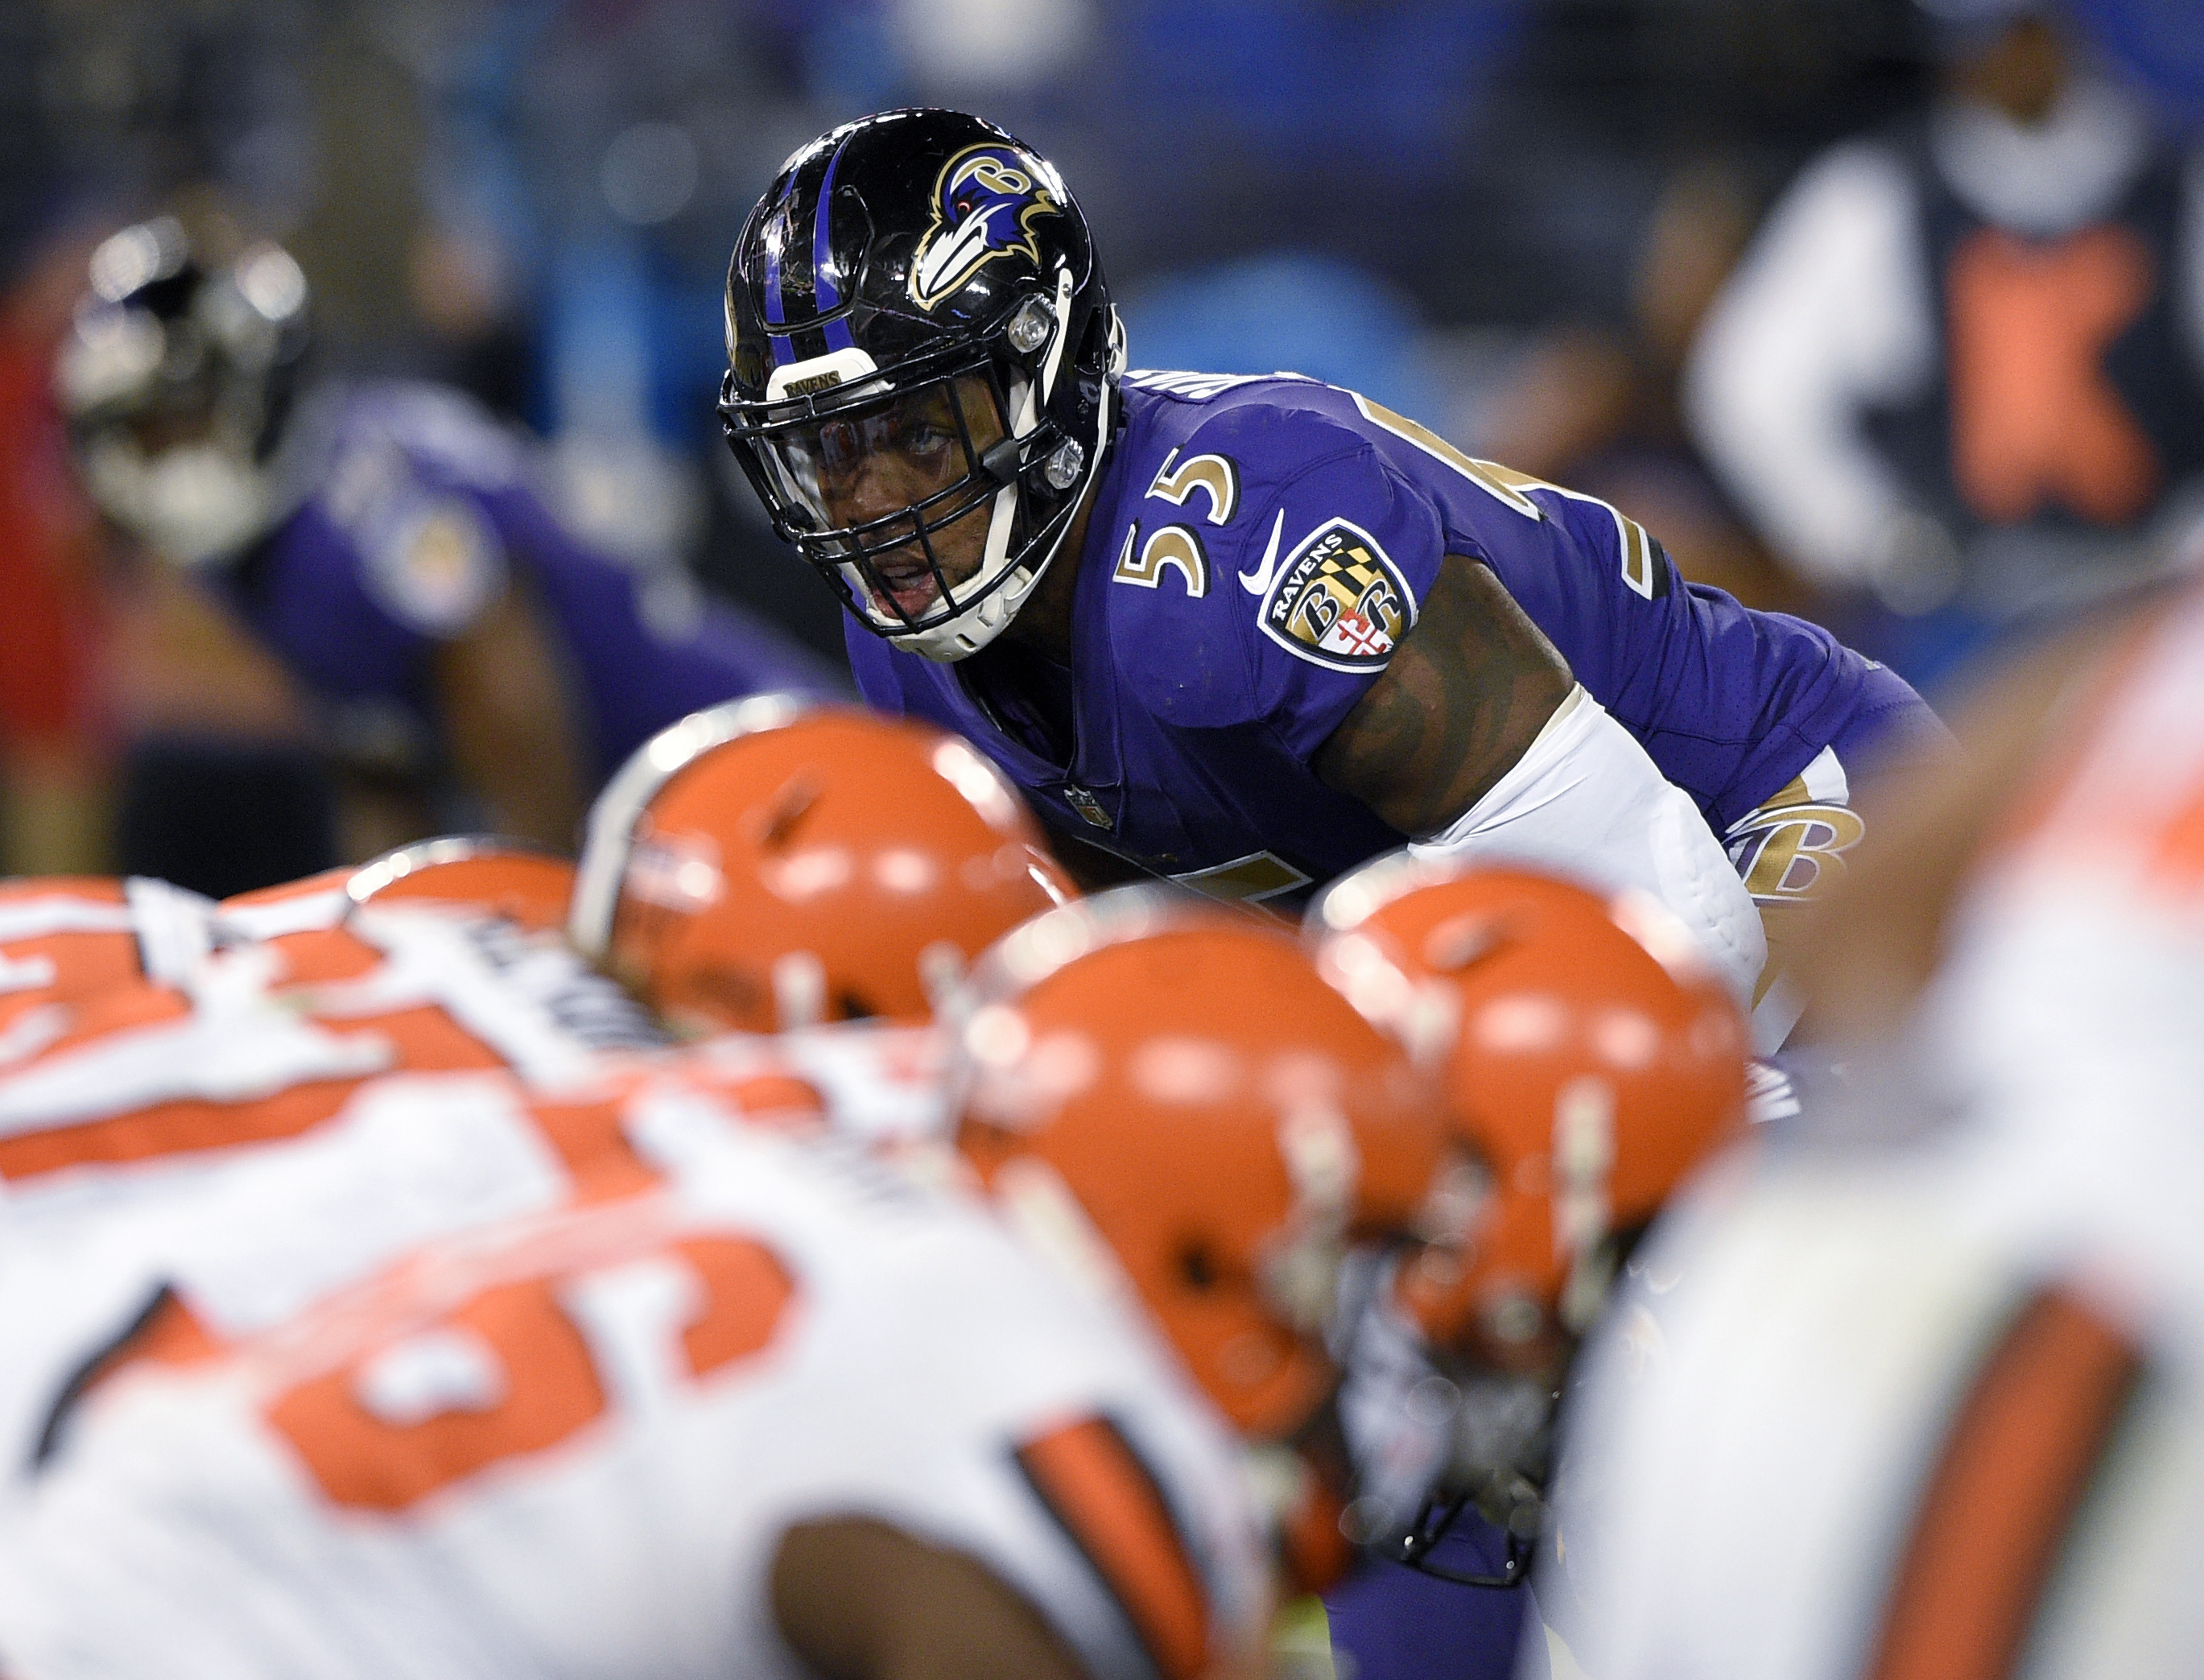 FILE - In this Nov. 10, 2016, file photo, Baltimore Ravens outside linebacker Terrell Suggs (55) looks across the line of scrimmage during the team's NFL football game against the Cleveland Browns in Baltimore. The Ravens need a victory against the Bengal